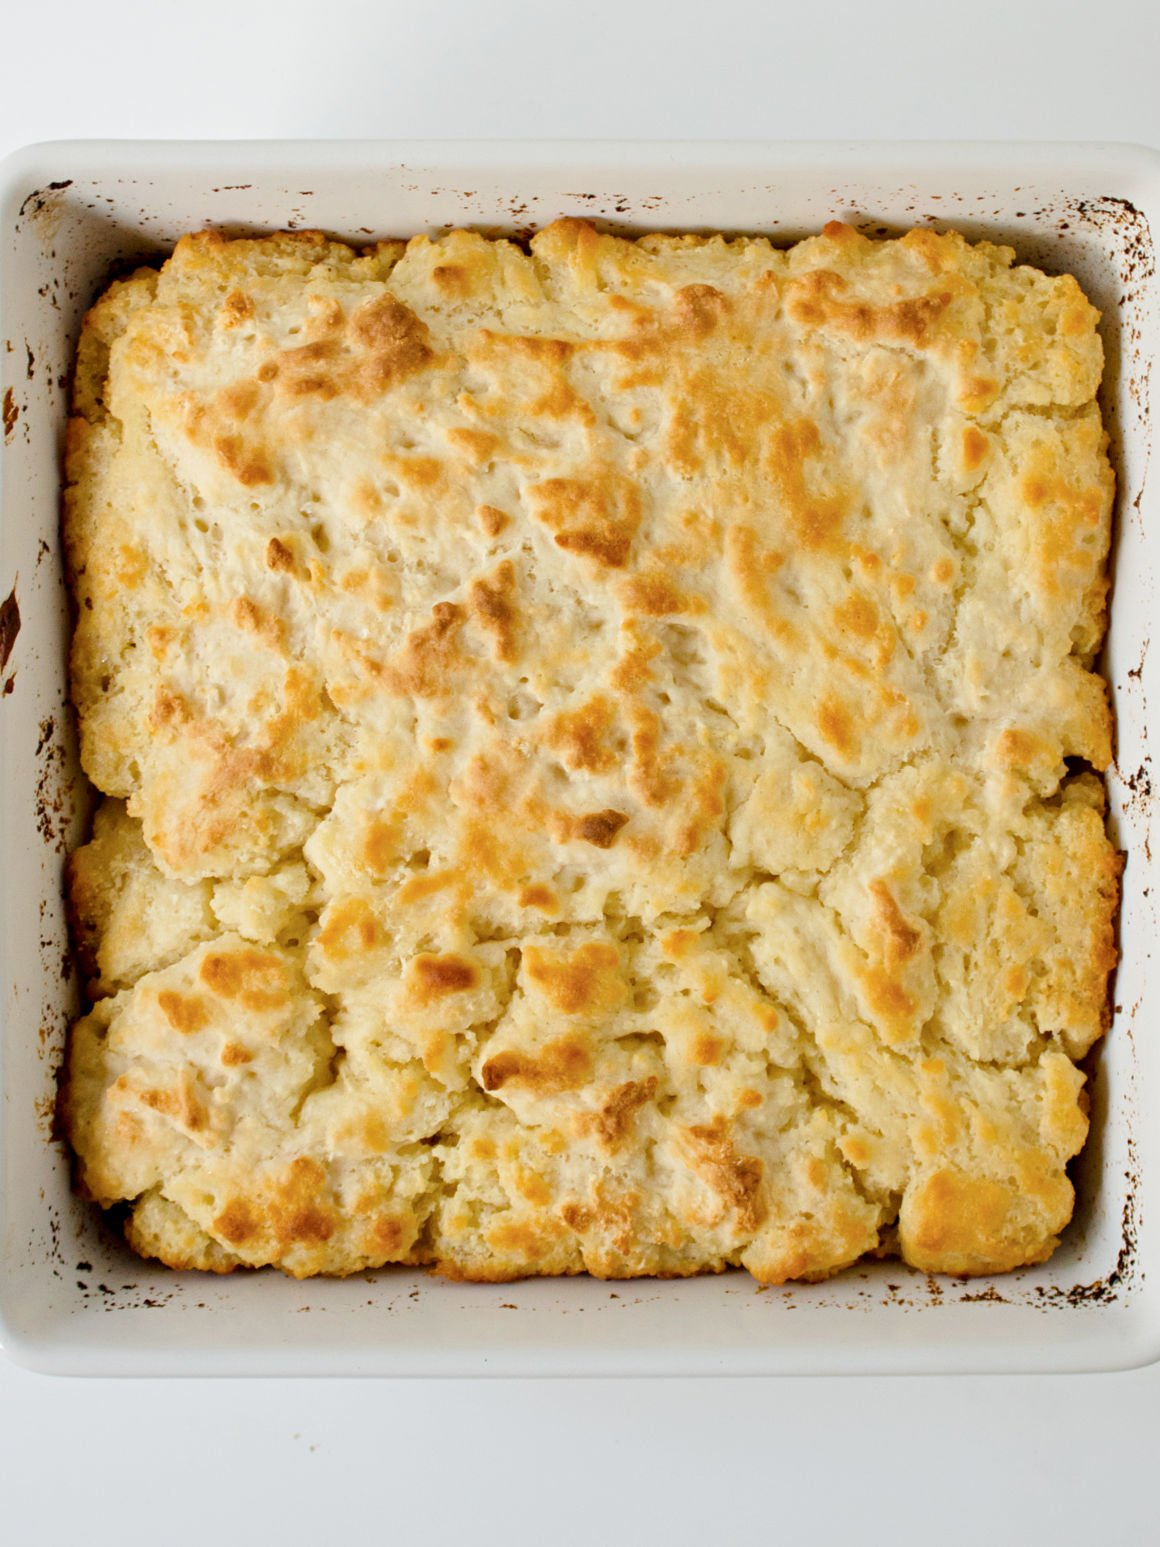 White baking pan filled with baked butter swim biscuits.